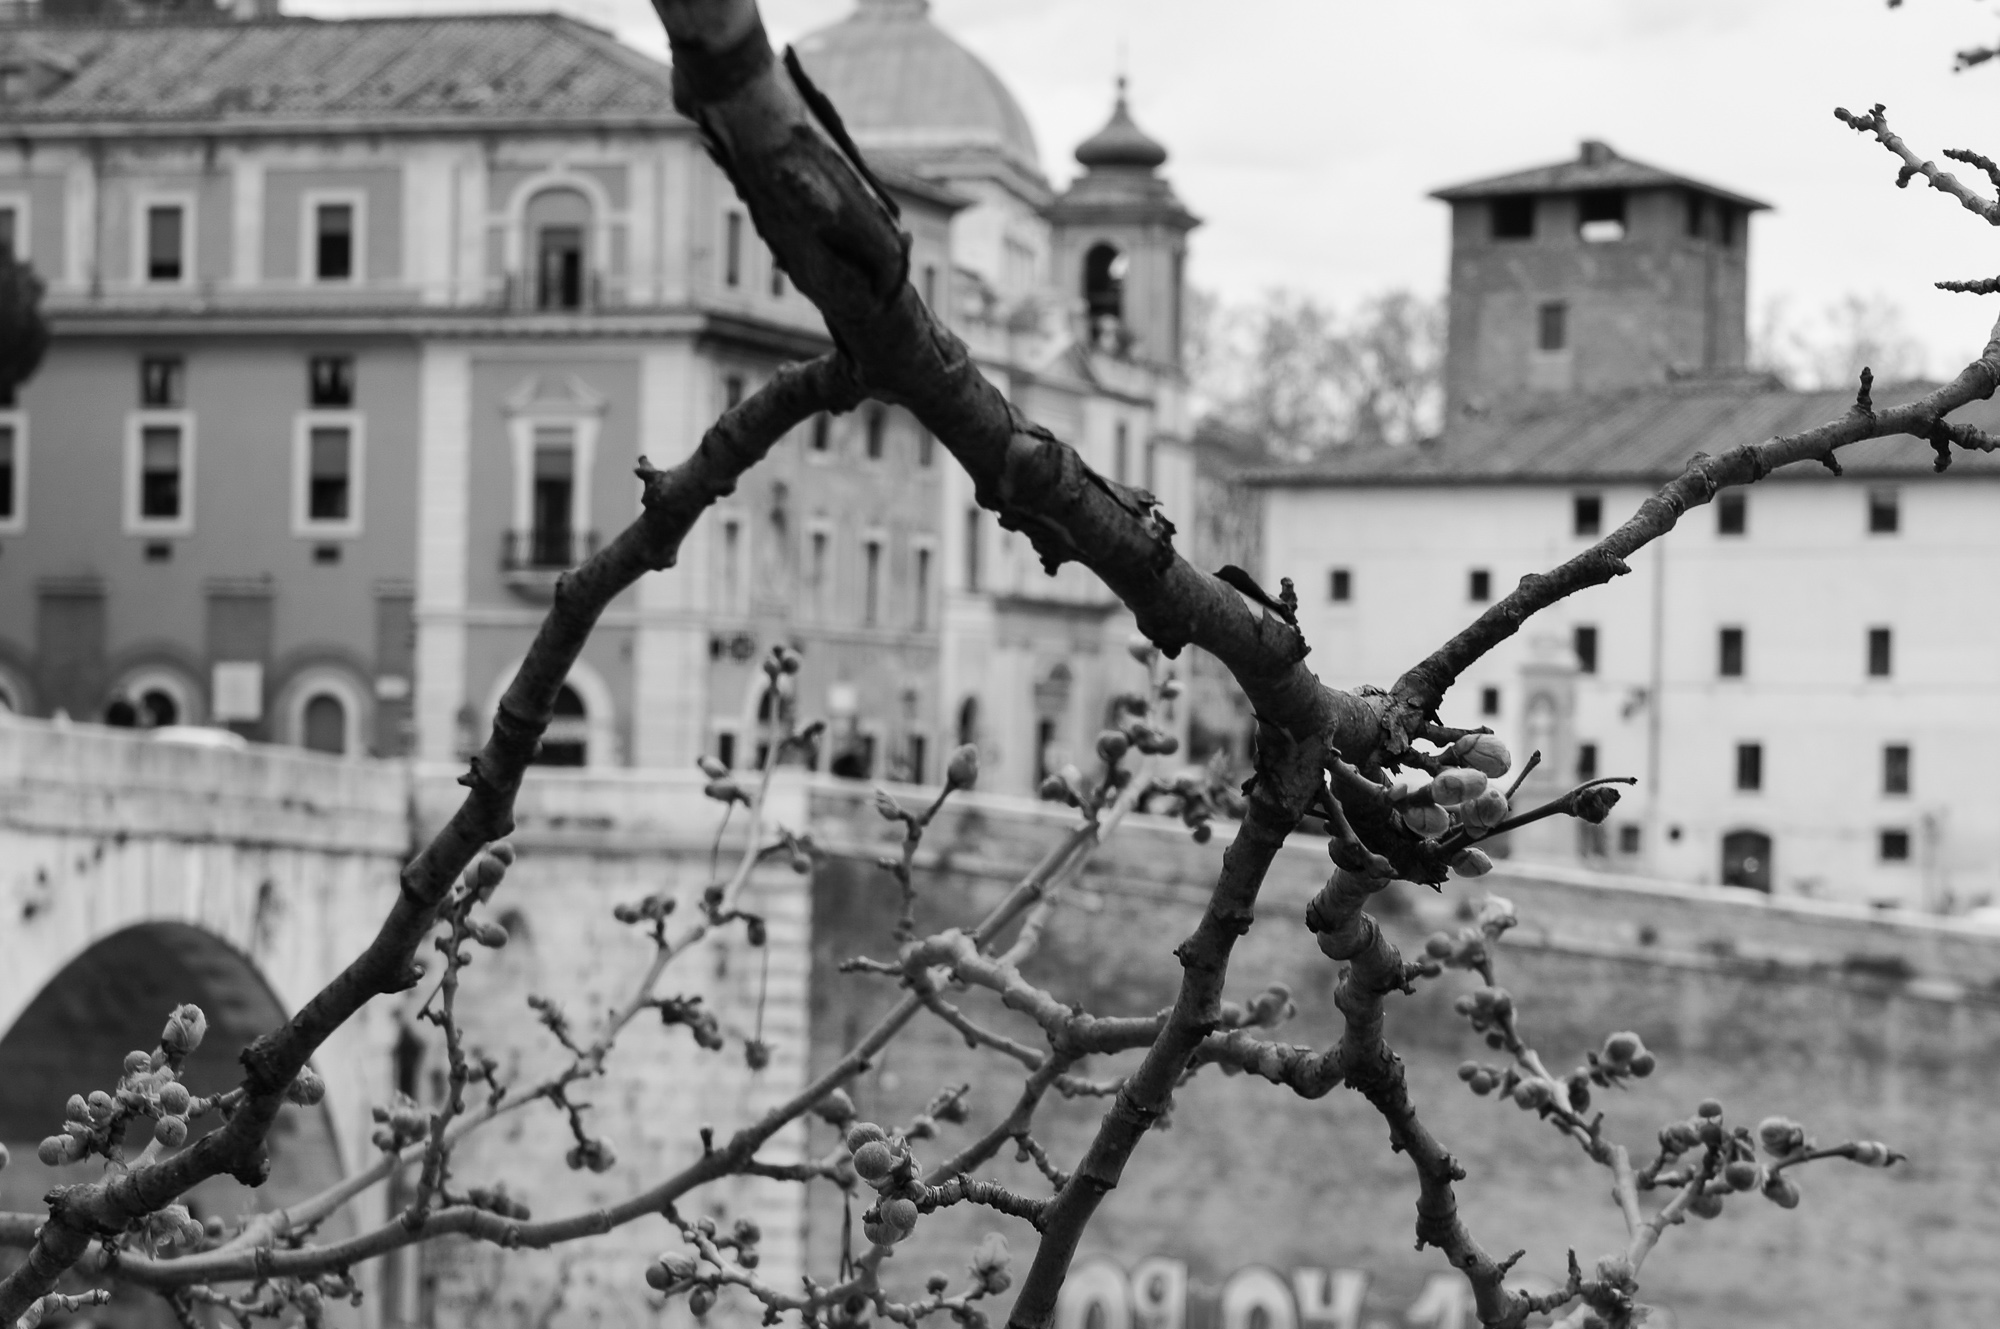 Early spring in Rome, 2018